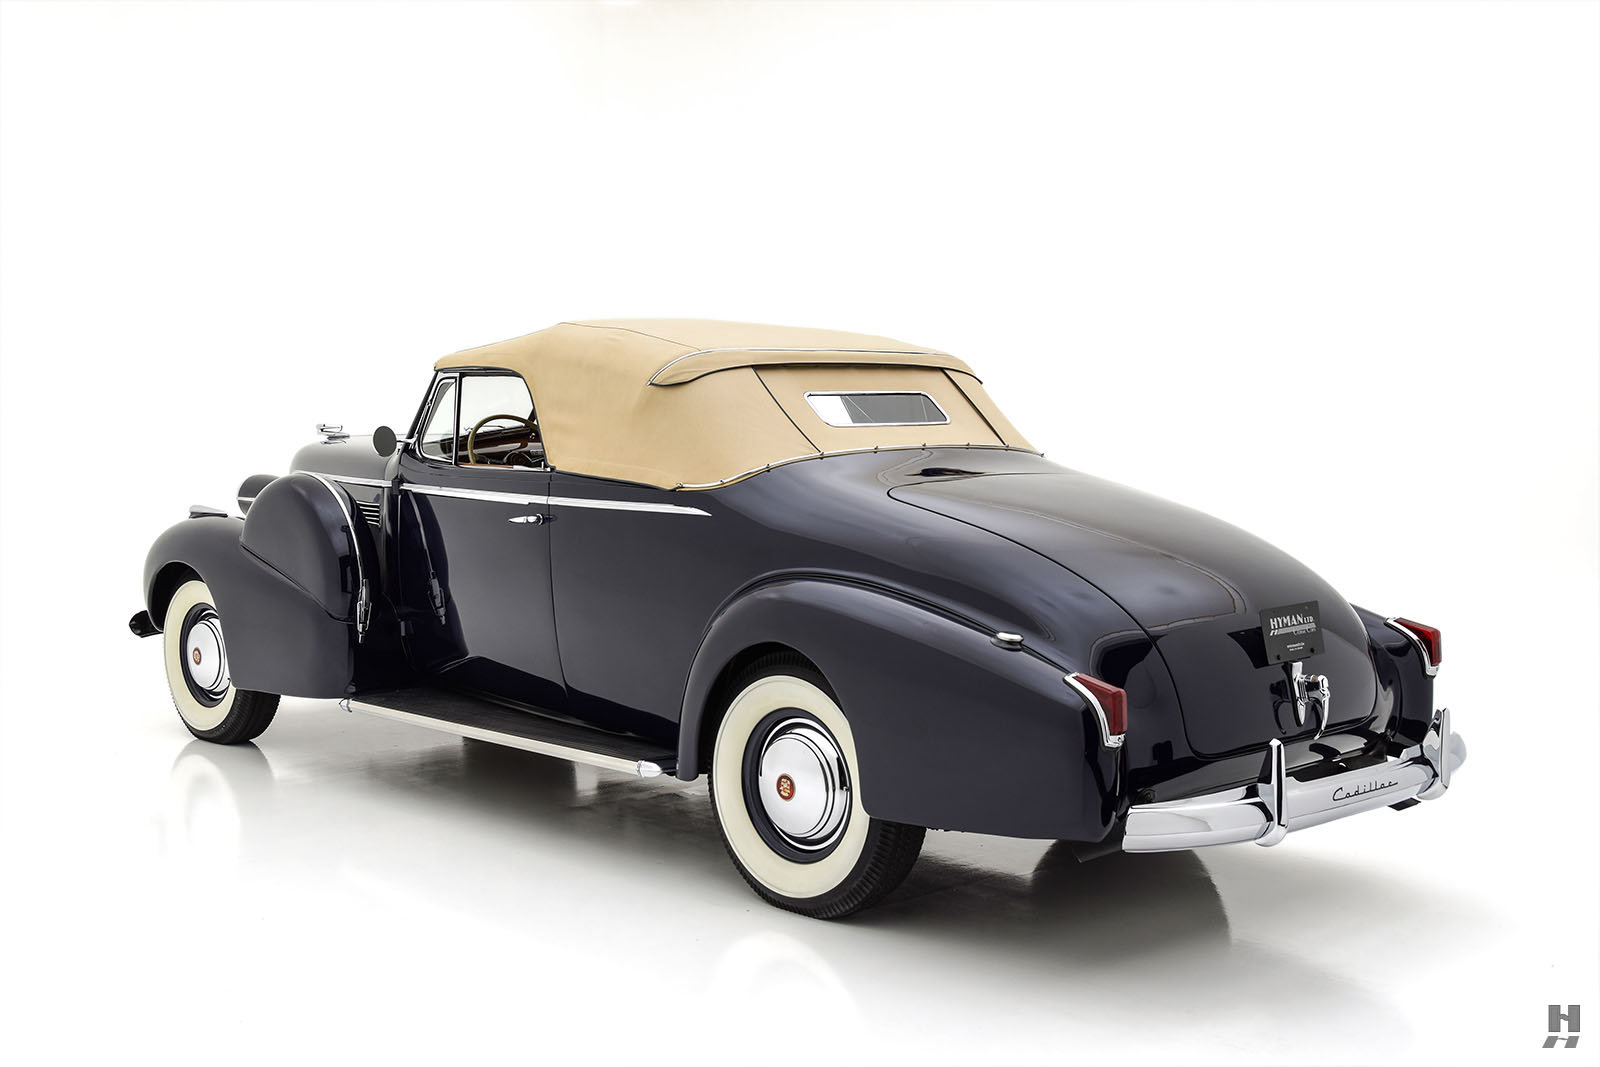 1940 CADILLAC SERIES 75 CONVERTIBLE COUPE For Sale (picture 6 of 6)